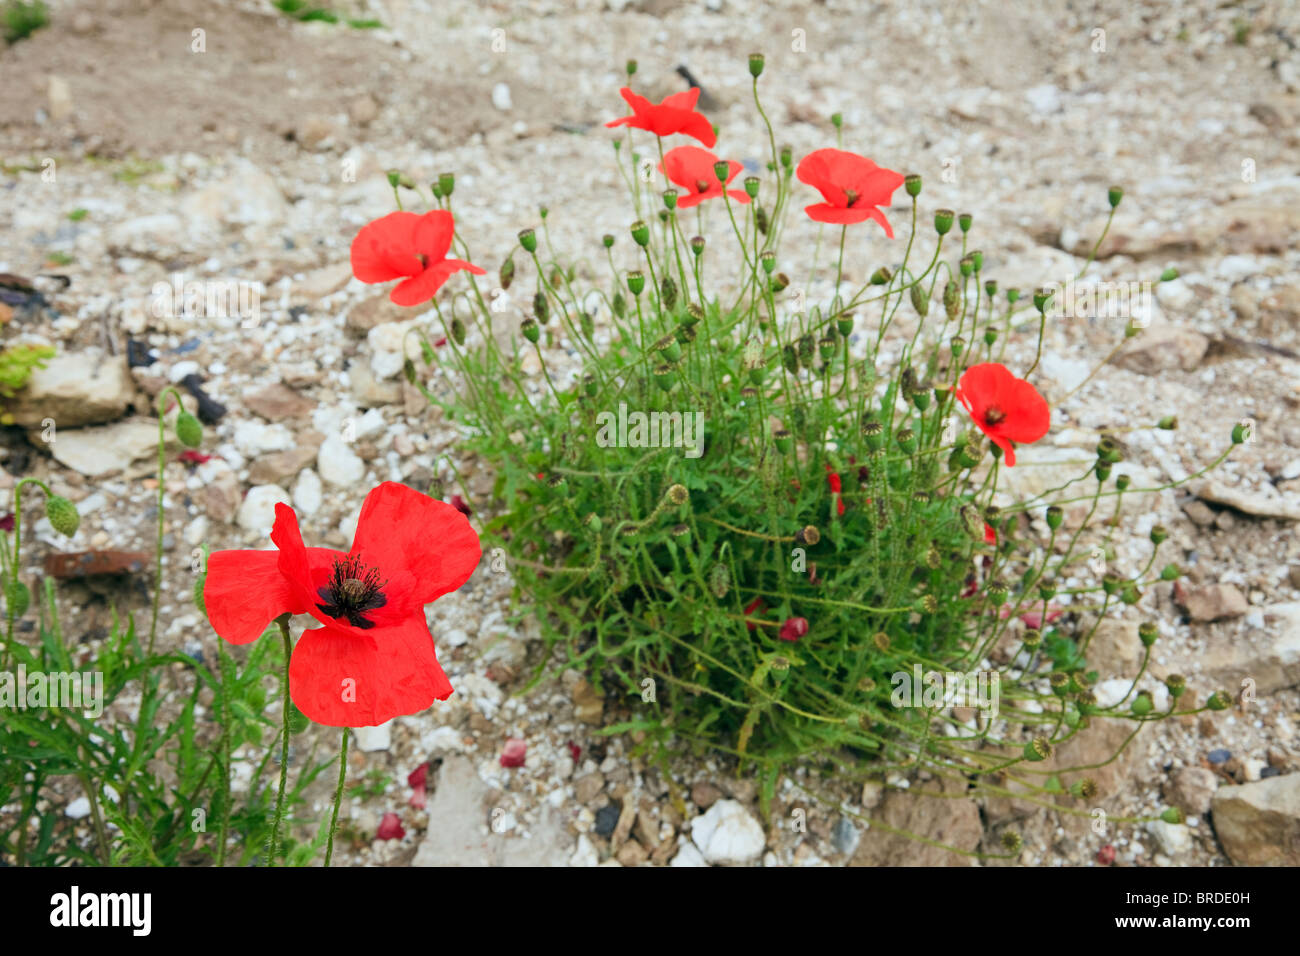 UK Common red Poppies (Papaver rhoeas) growing on disturbed stony ground - Stock Image